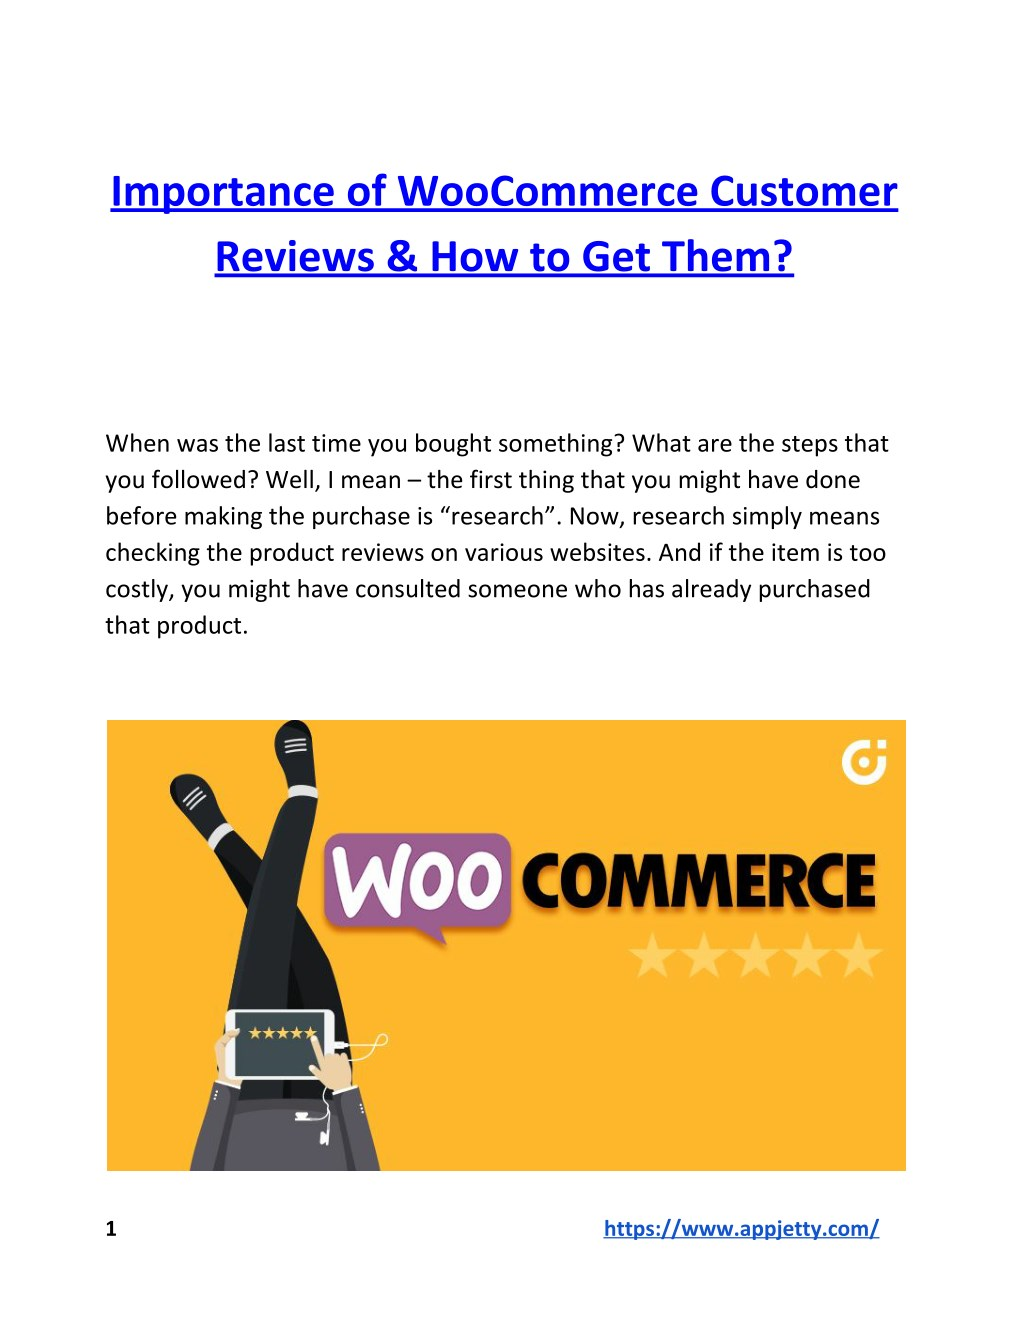 Ppt Importance Of Woocommerce Customer Reviews How To Get Them